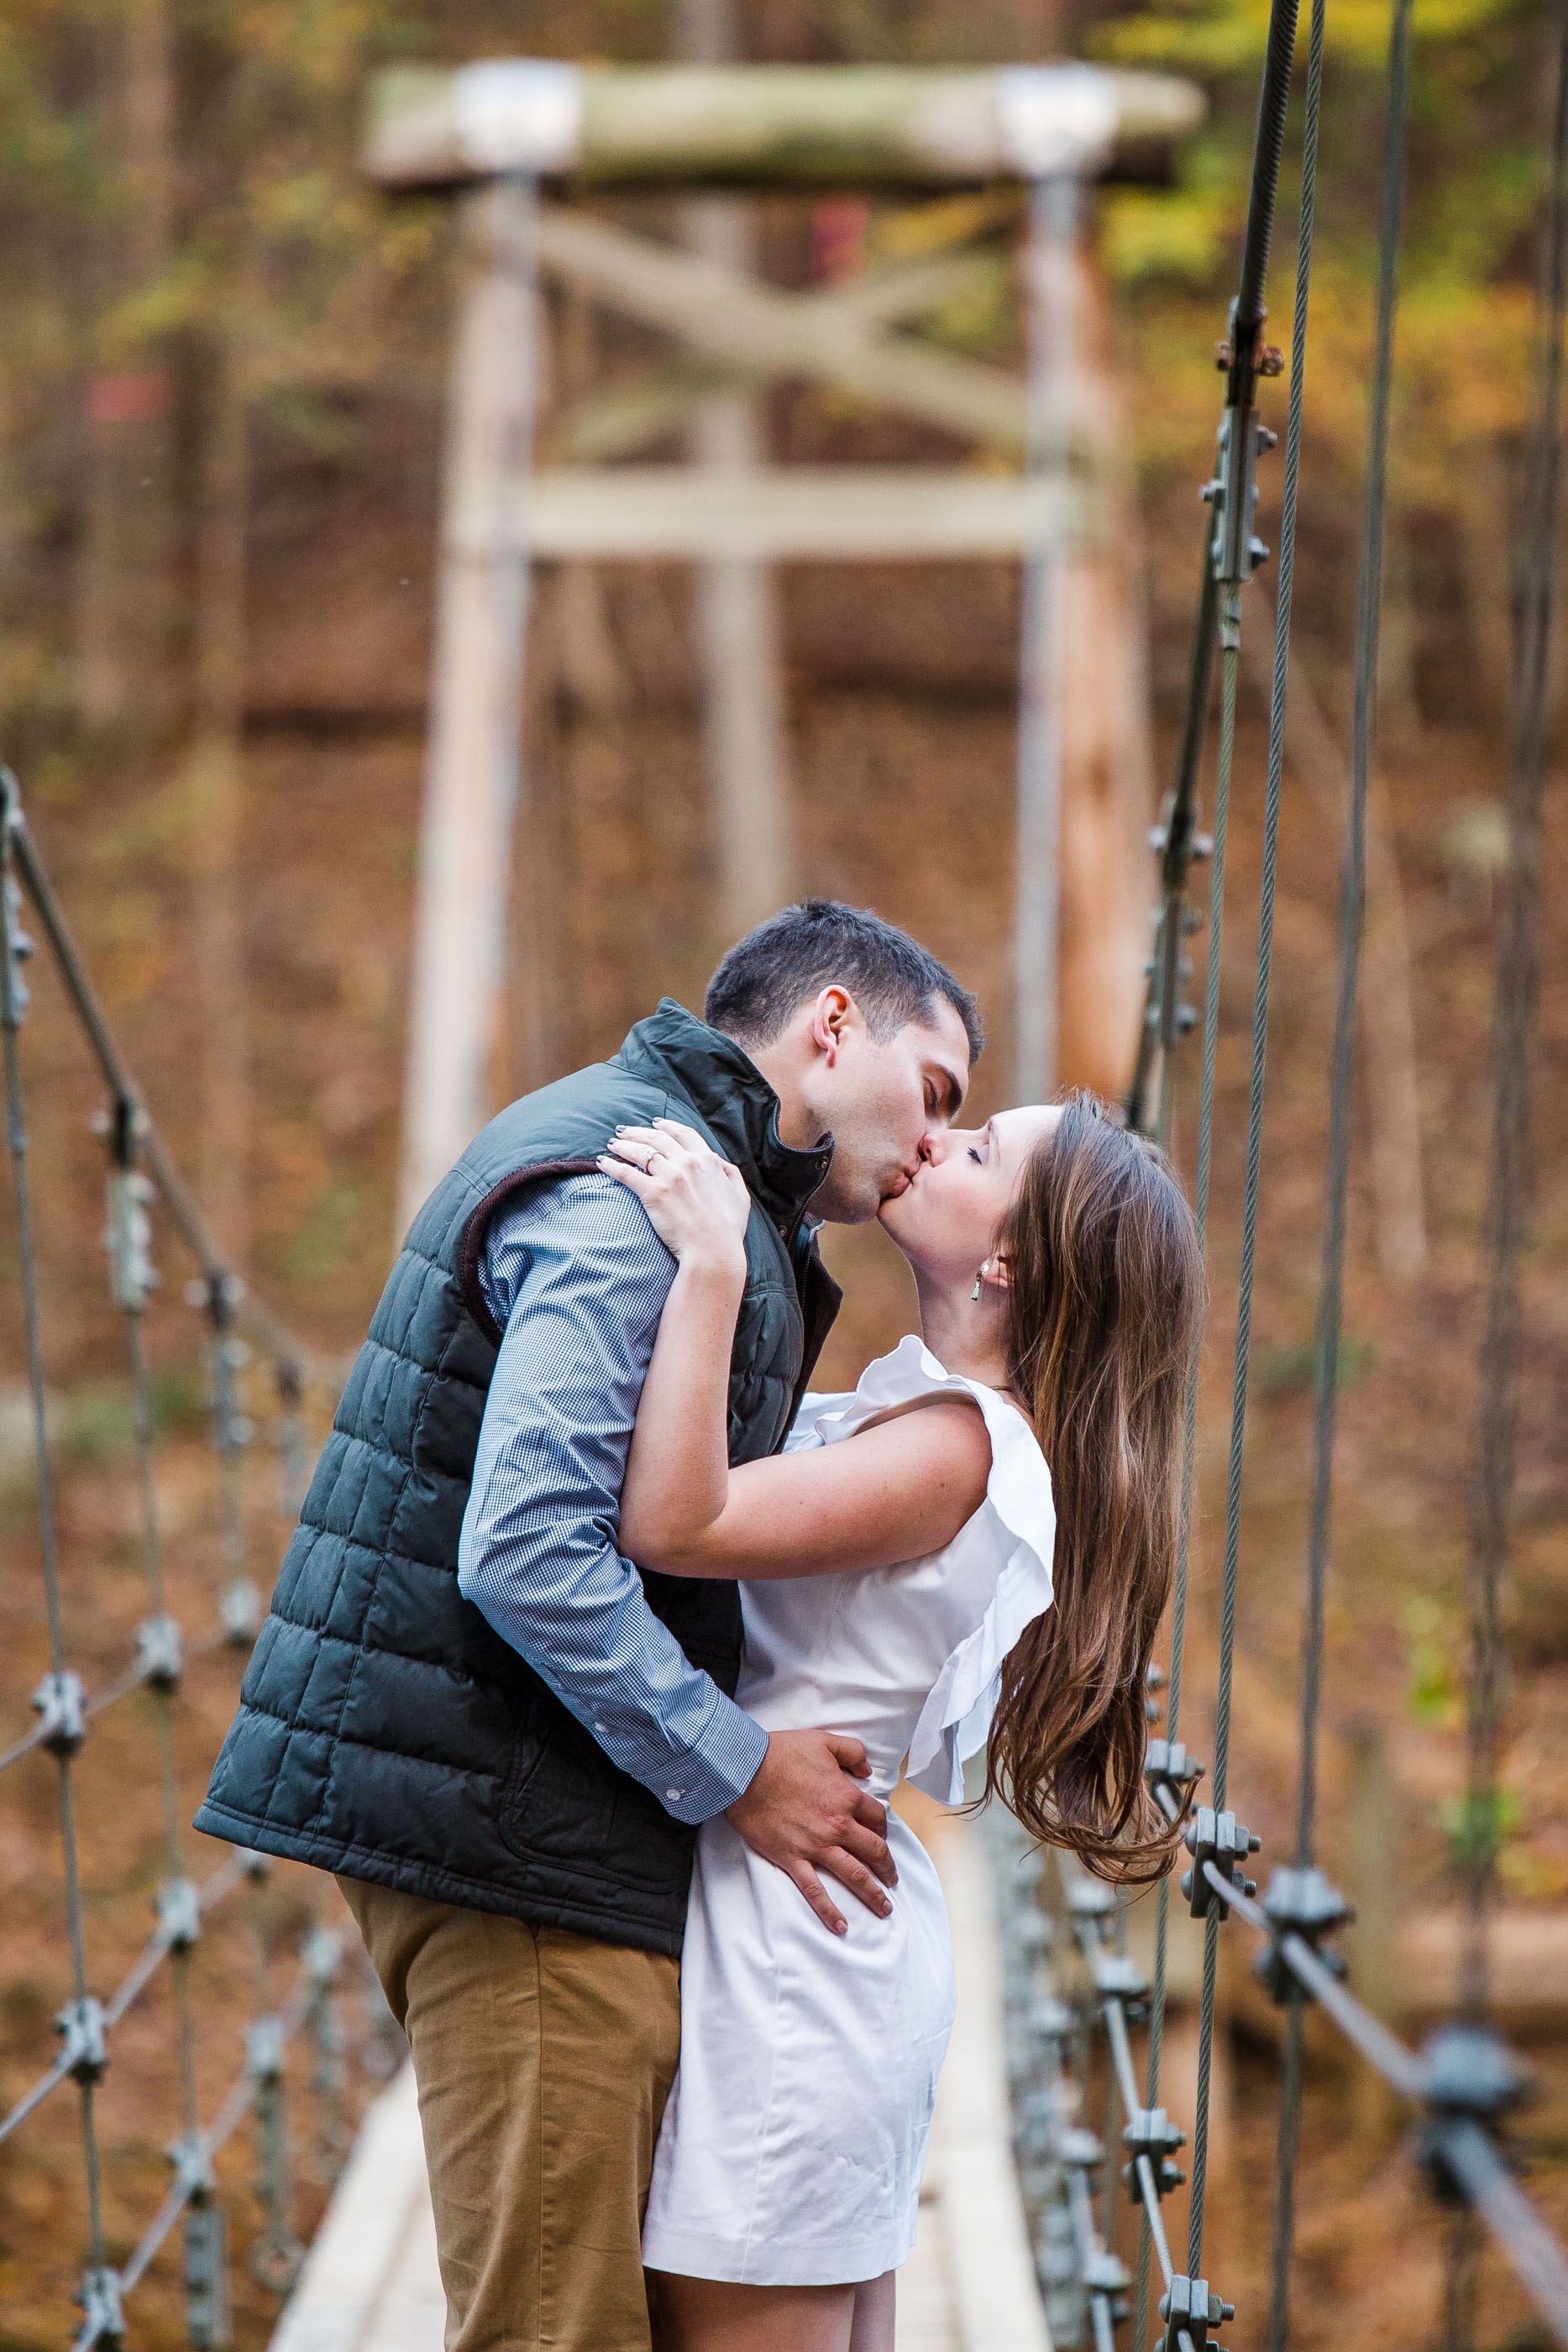 2018_11_07_michelle_francisco_engagement_eno_river-8841.jpg